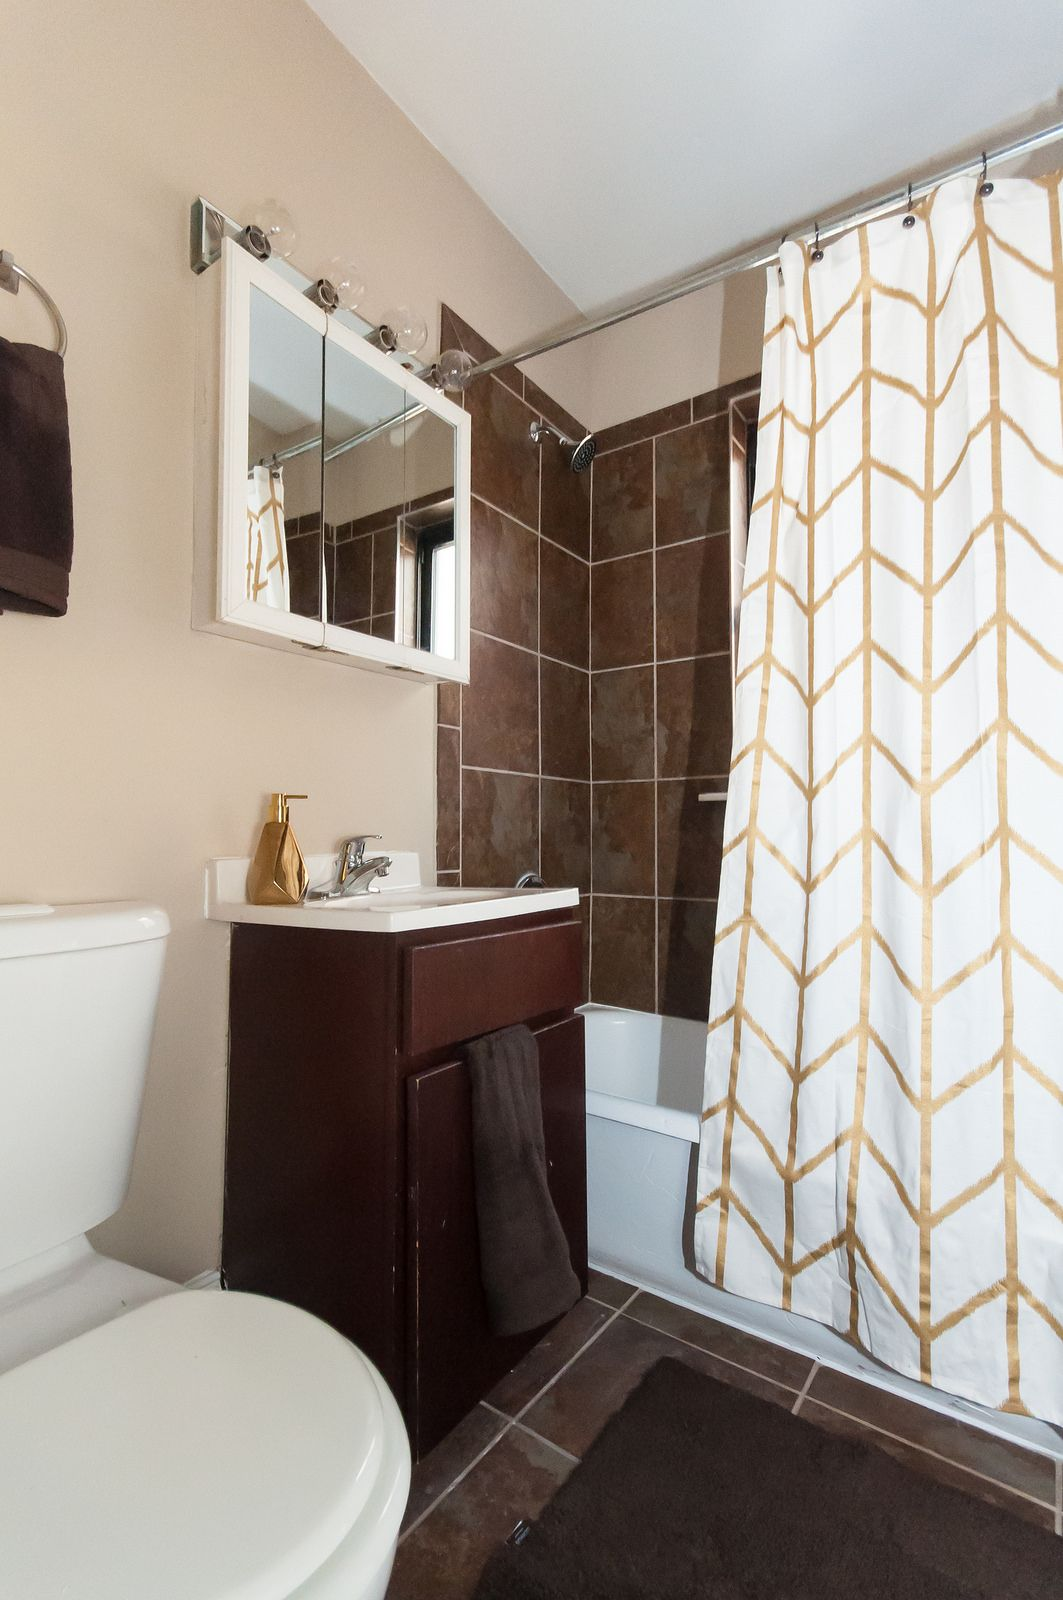 This Bathroom Looks Rich With The Dark Tile And Tan Walls